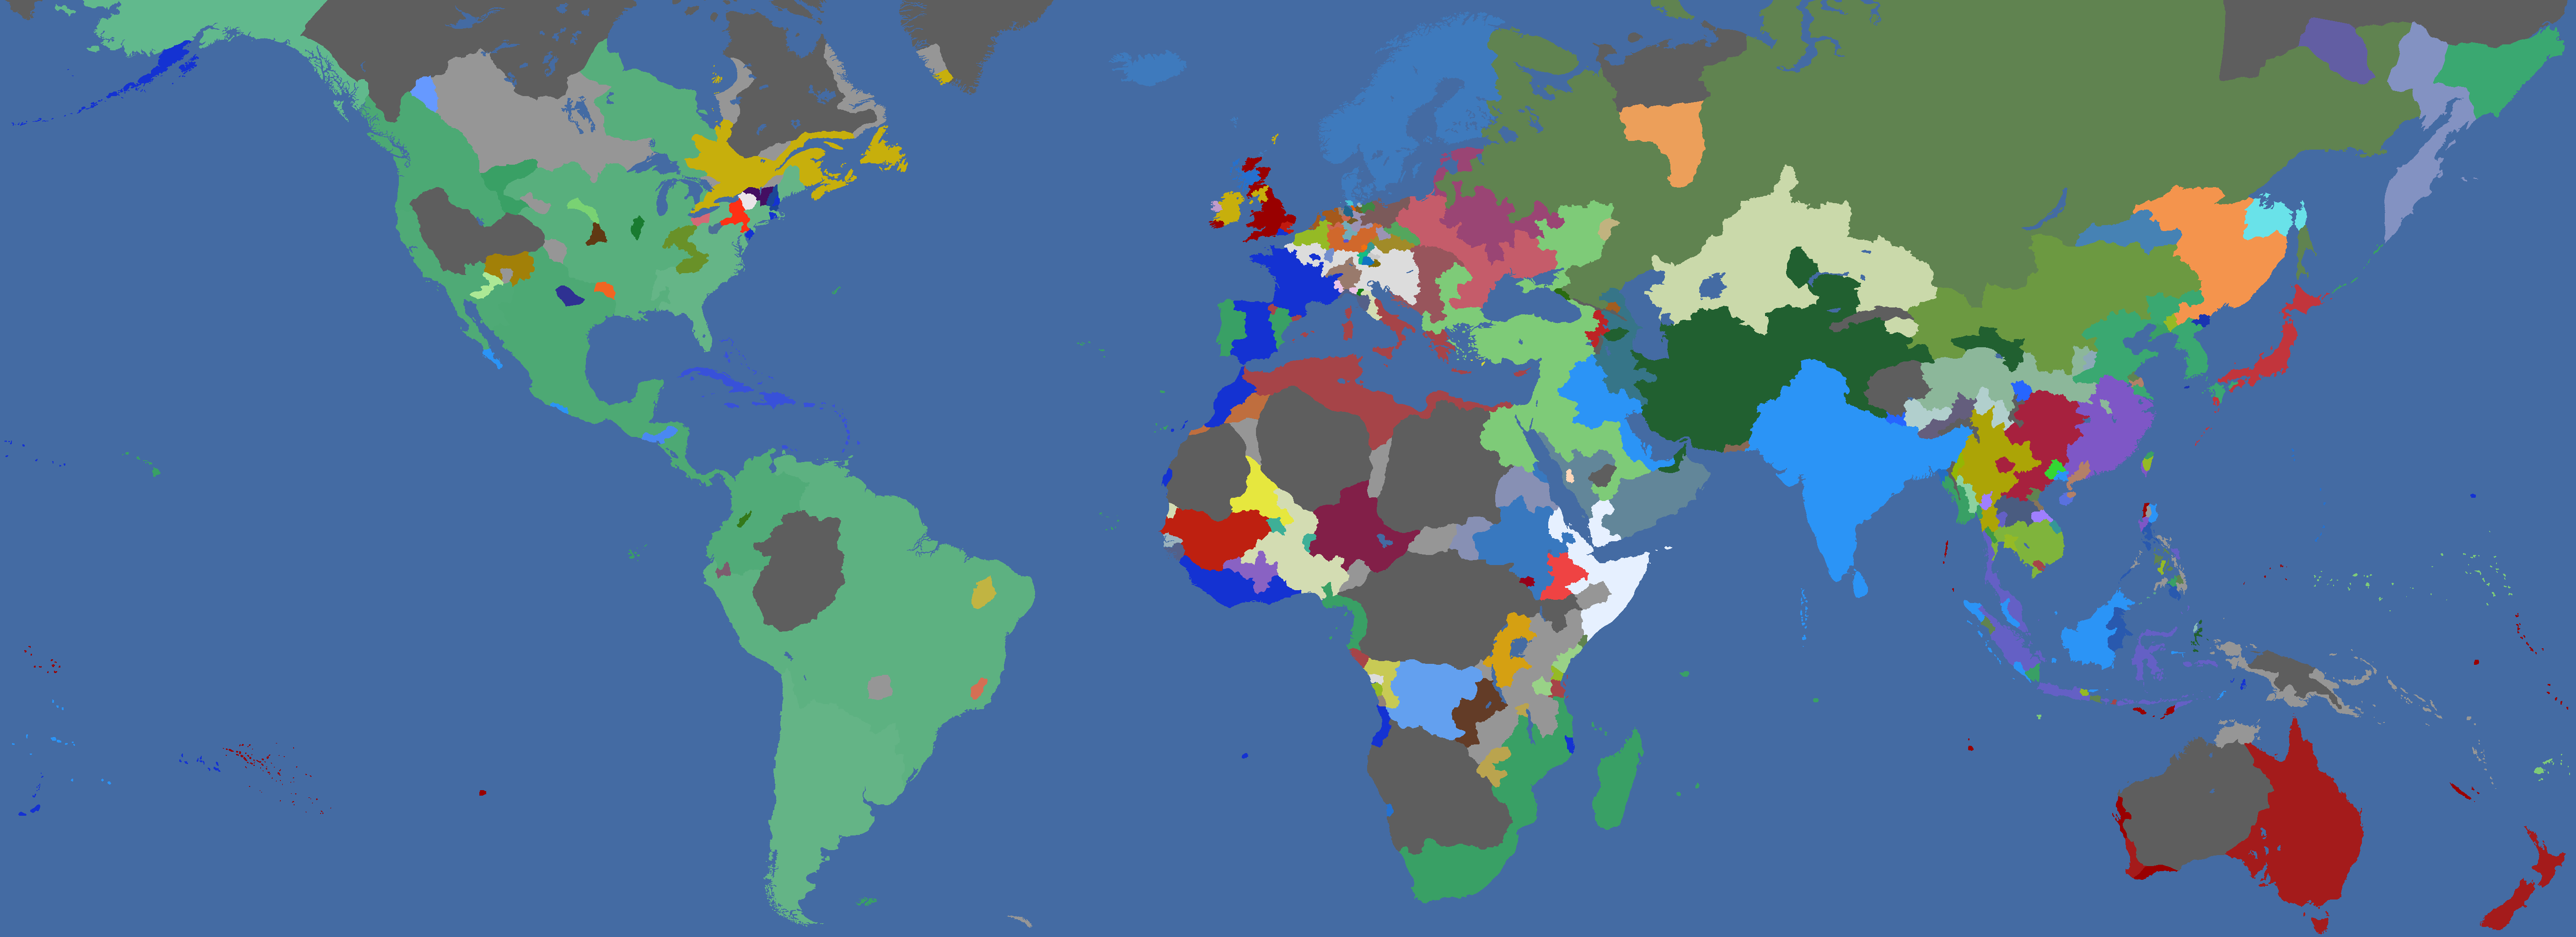 eu4_map_KND_1758_11_01_1.png